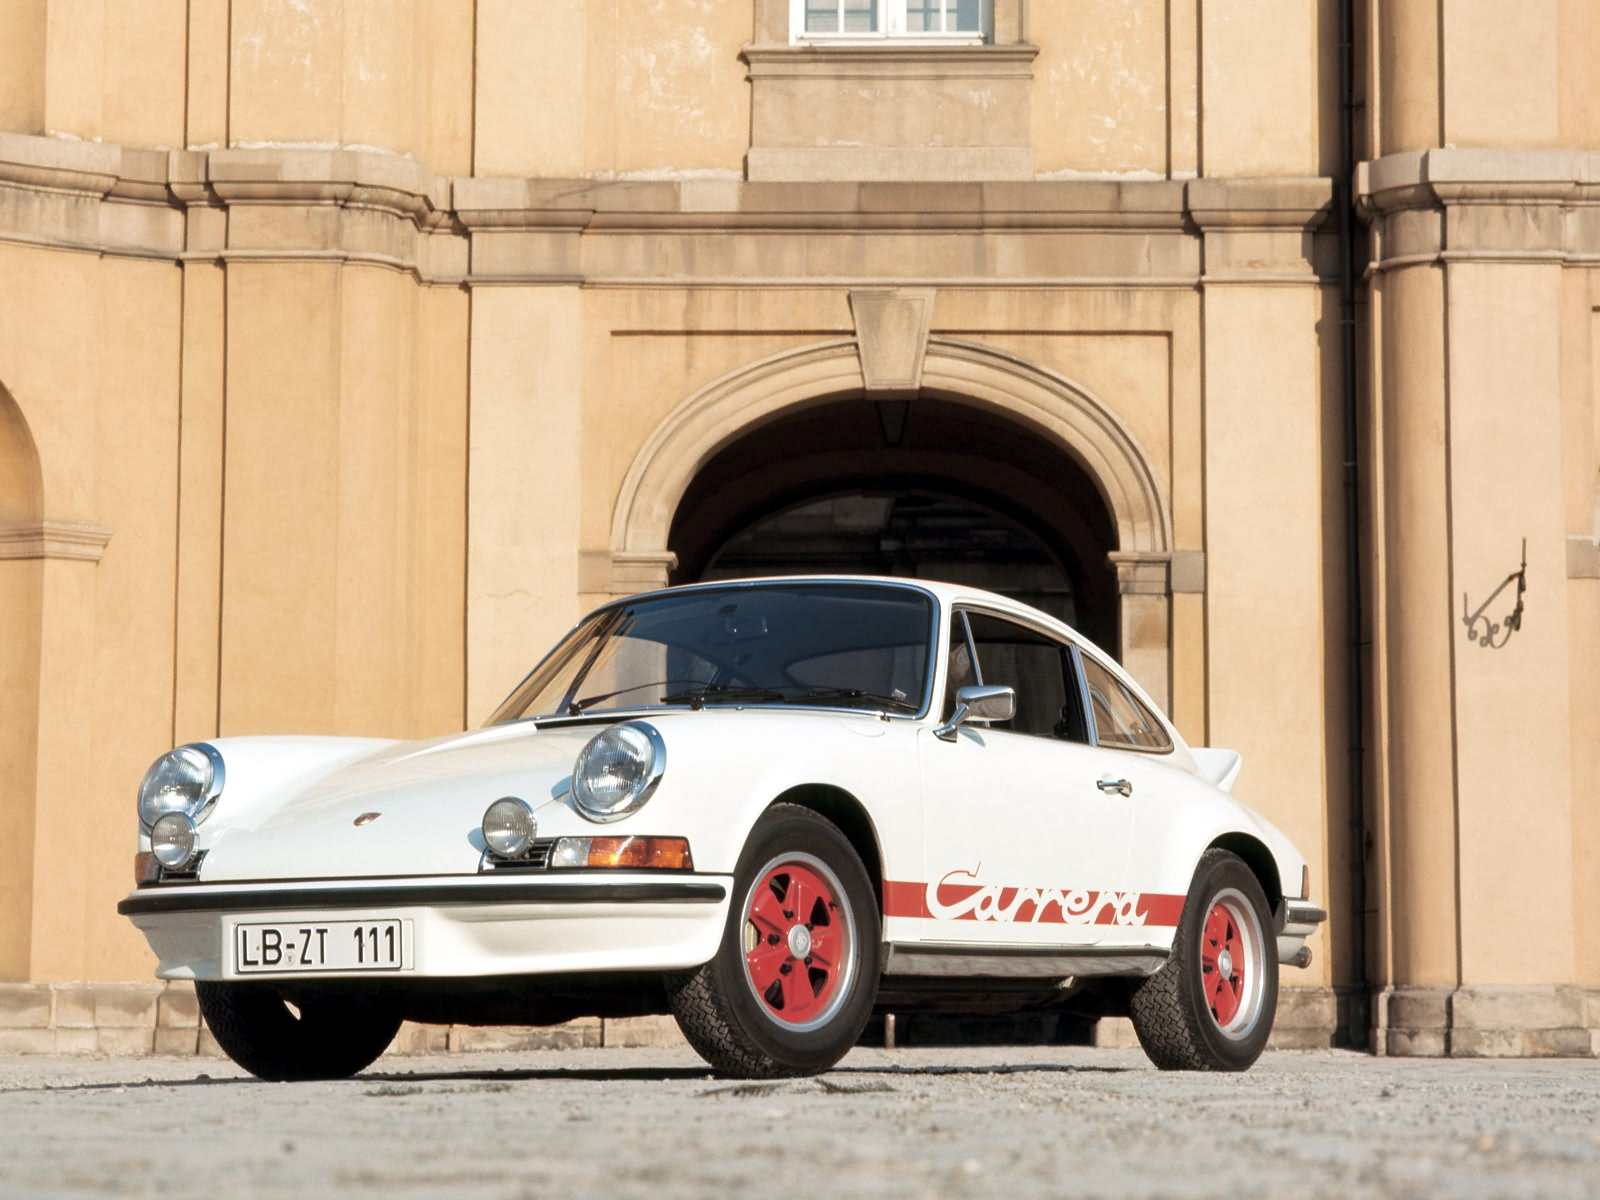 3dtuning of porsche 911 carrera rs coupe 1973 3dtuning porsche 911 carrera rs coupe 1973 vanachro Choice Image